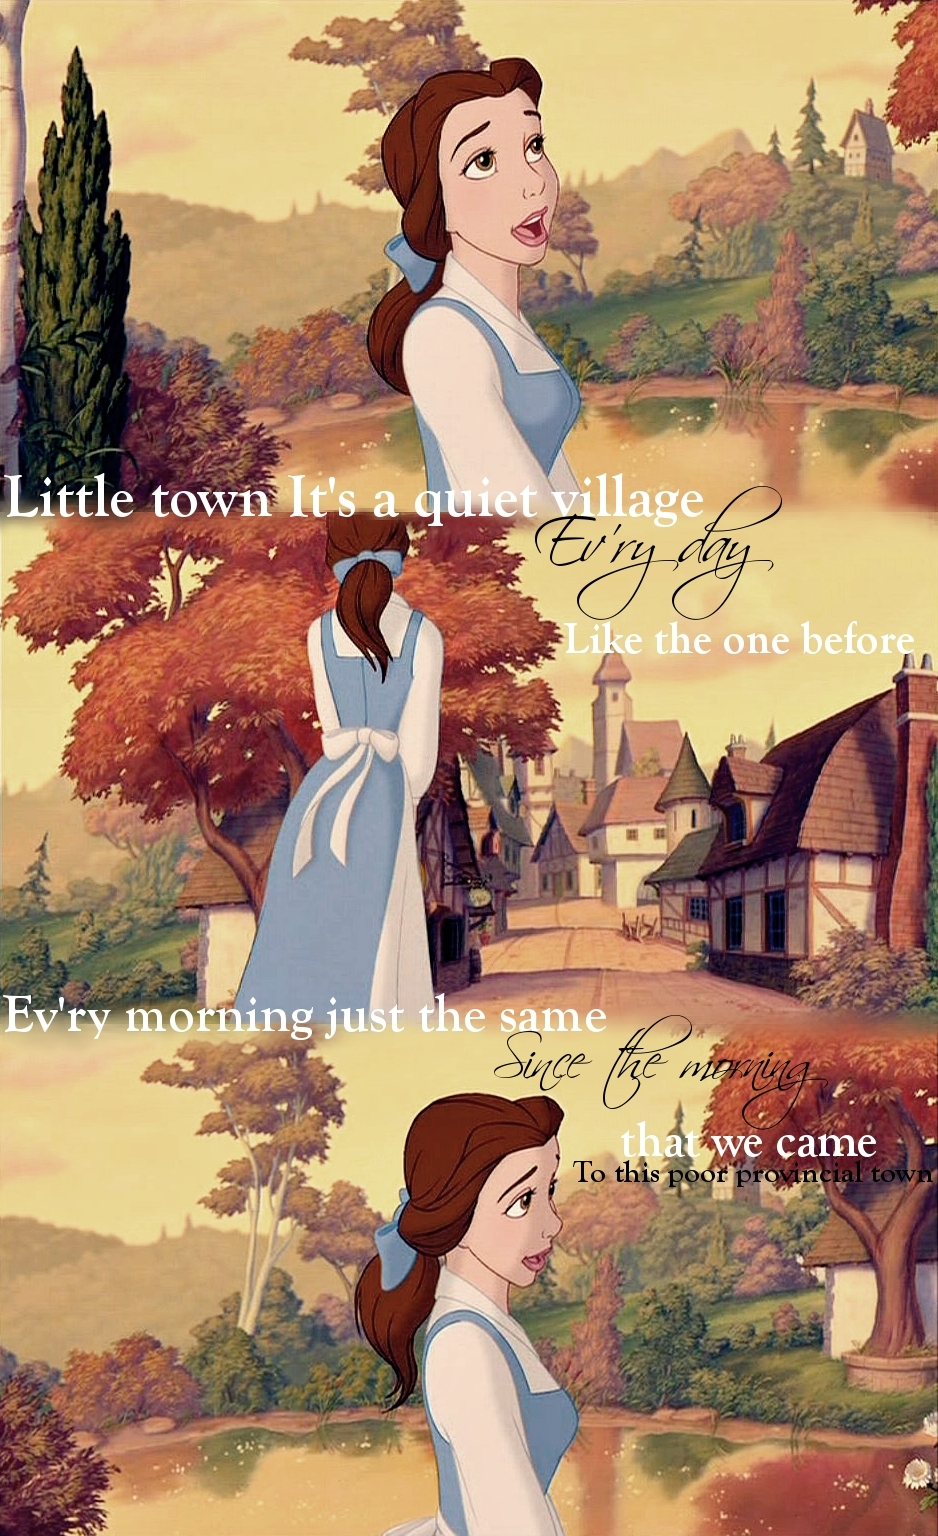 beauty and the beast lockscreens | Tumblr